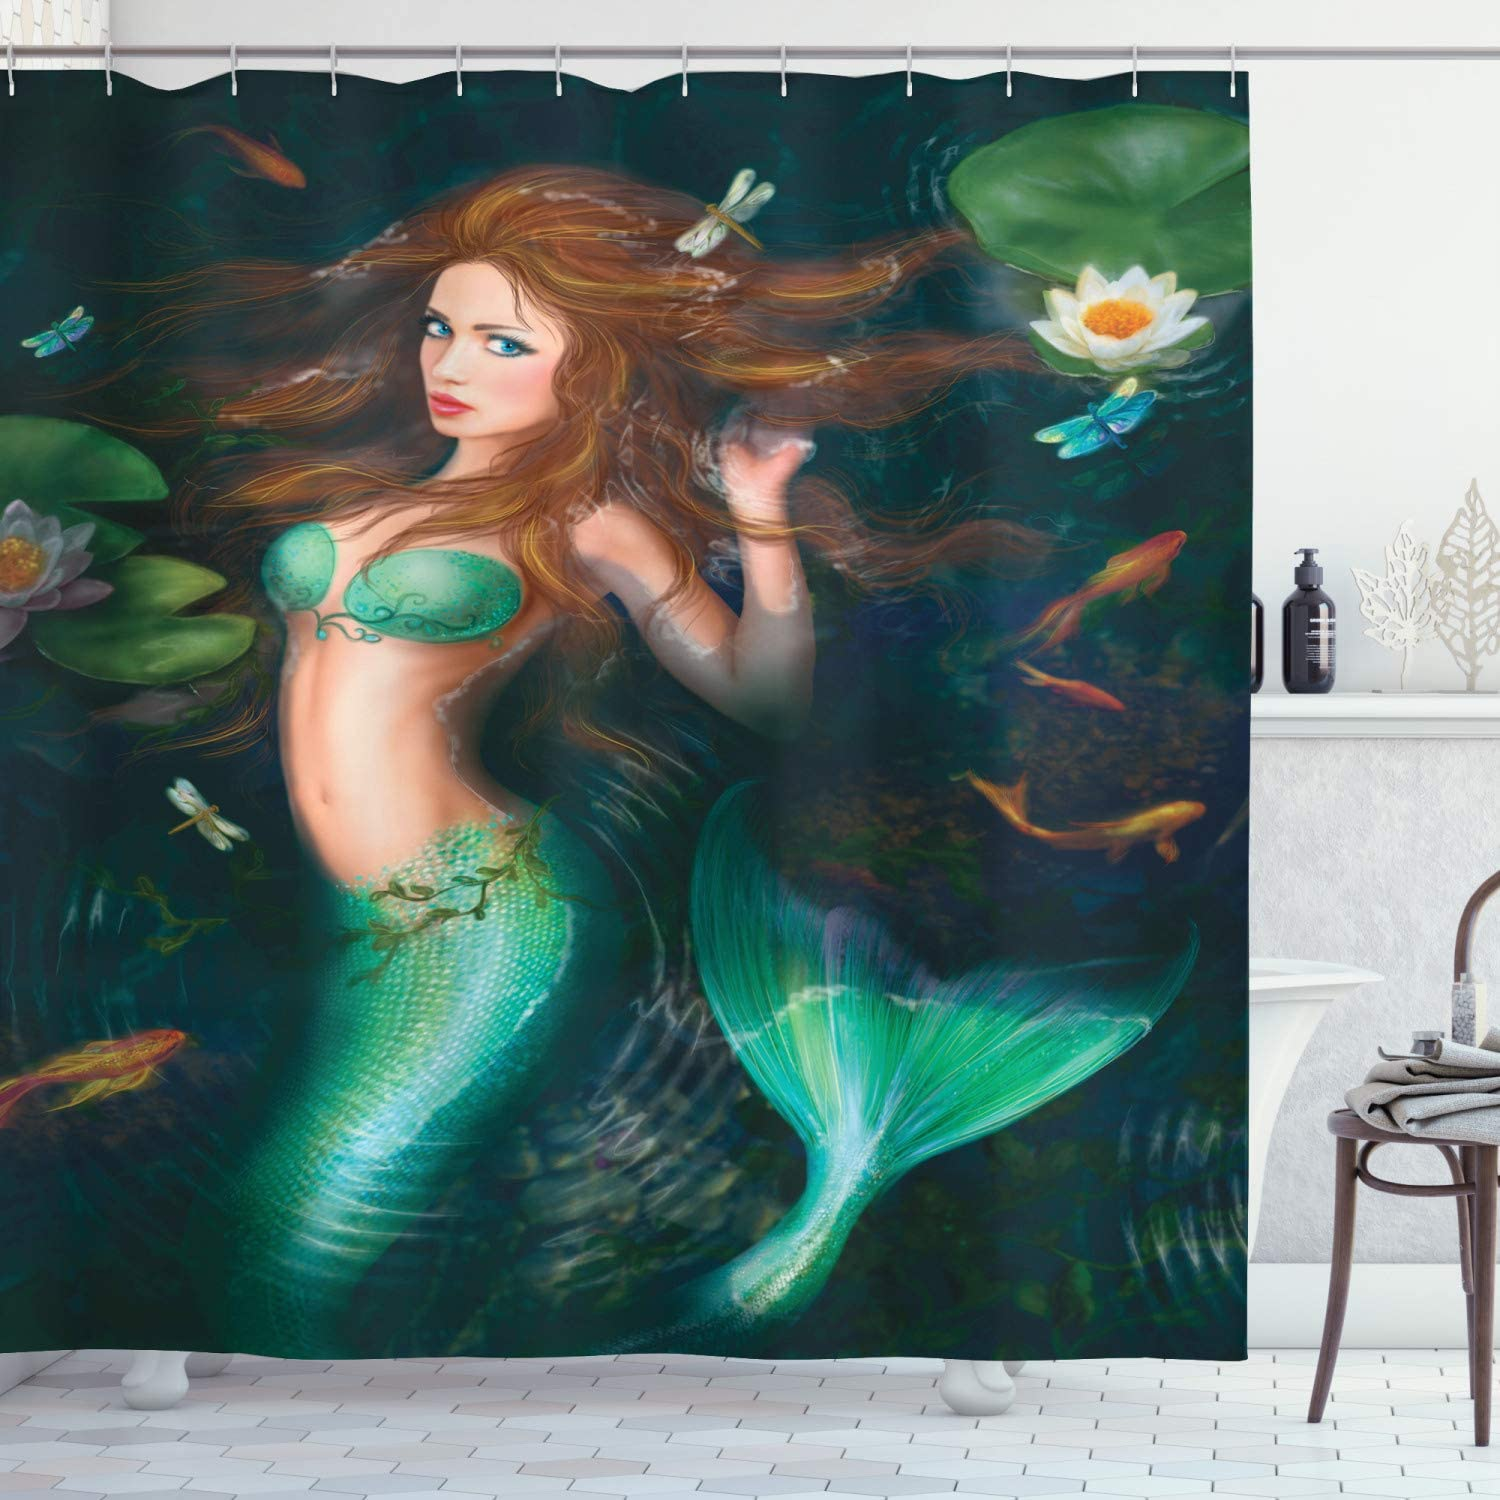 Max 77% OFF Max 80% OFF Ambesonne Underwater Shower Curtain an Imaginary Creature Me of